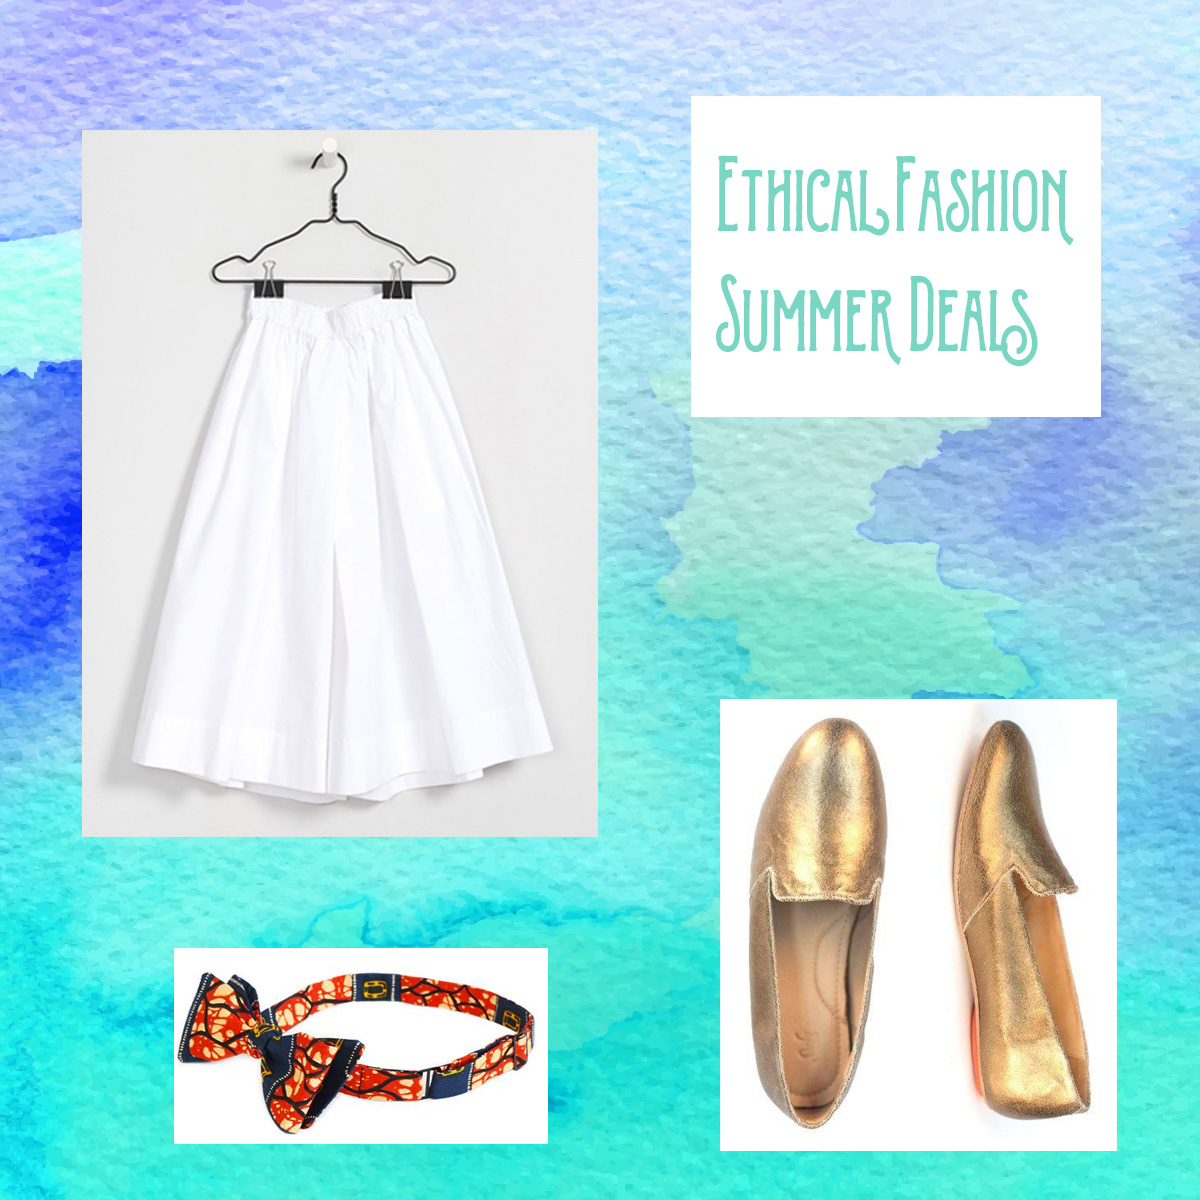 Ethical fashion summer deals